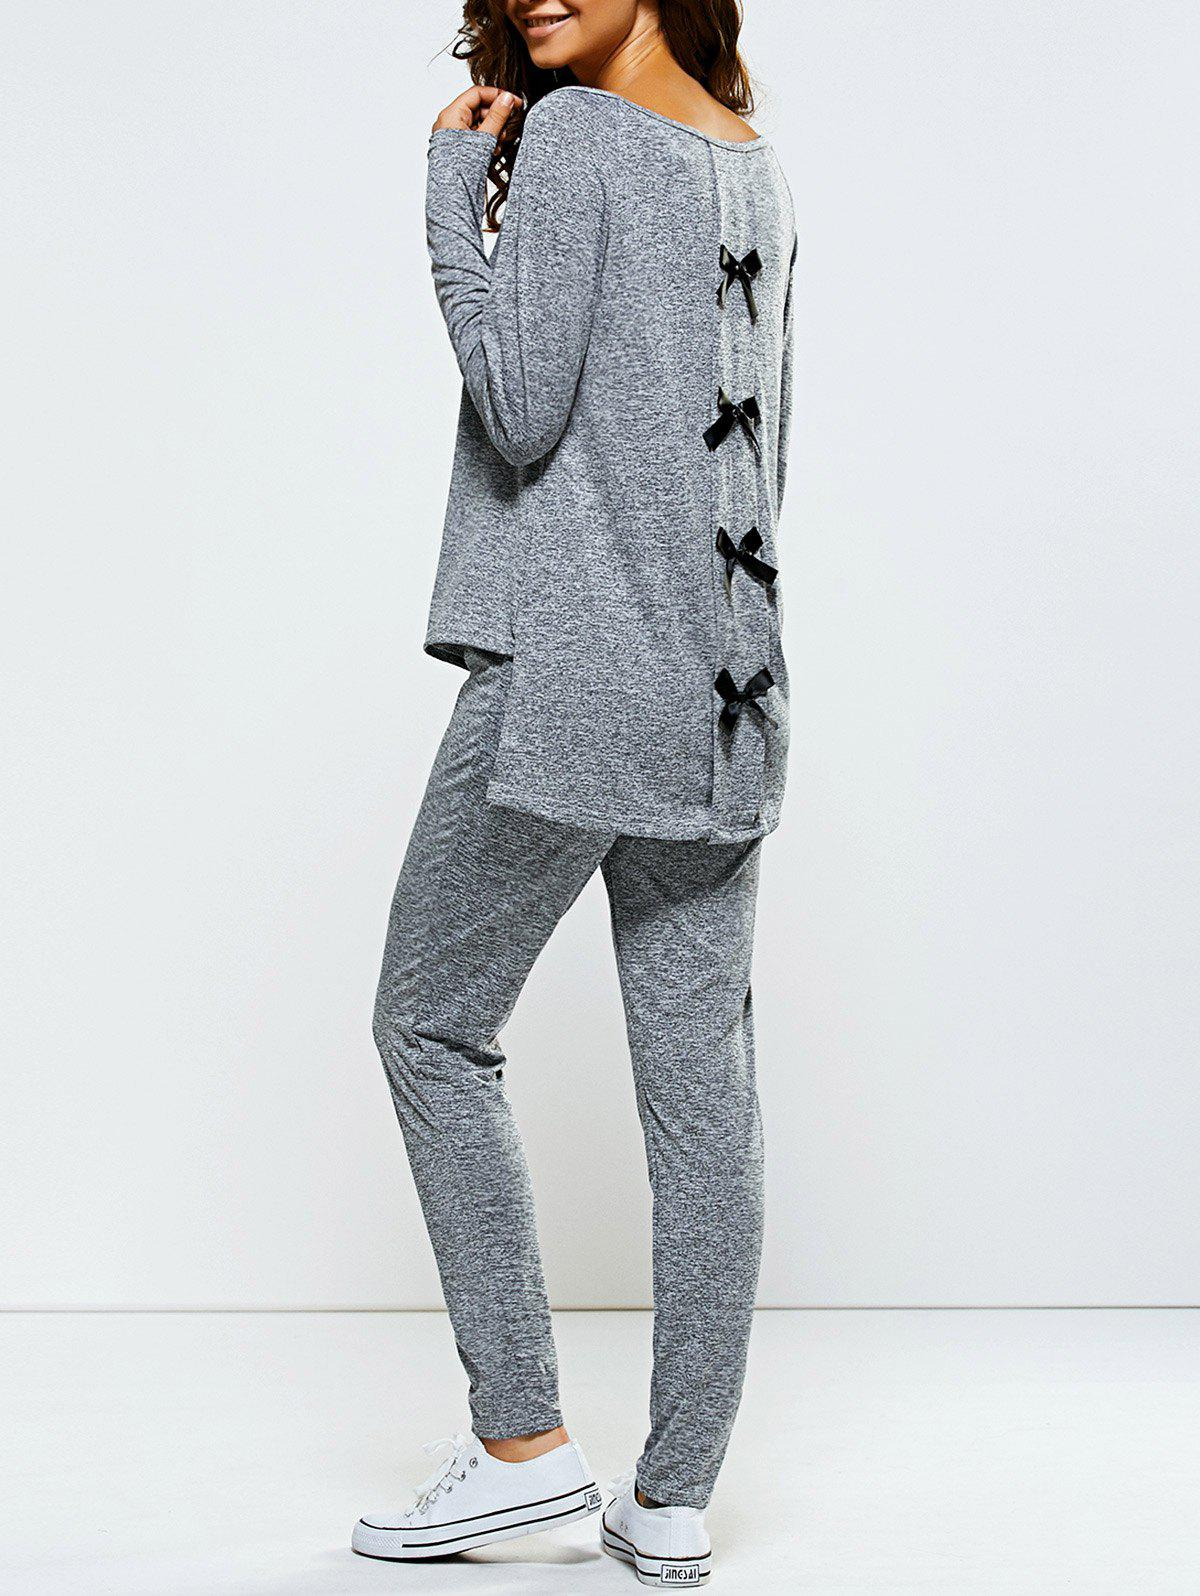 Store Bowknot Embellished Asymmetrical Sports Suit